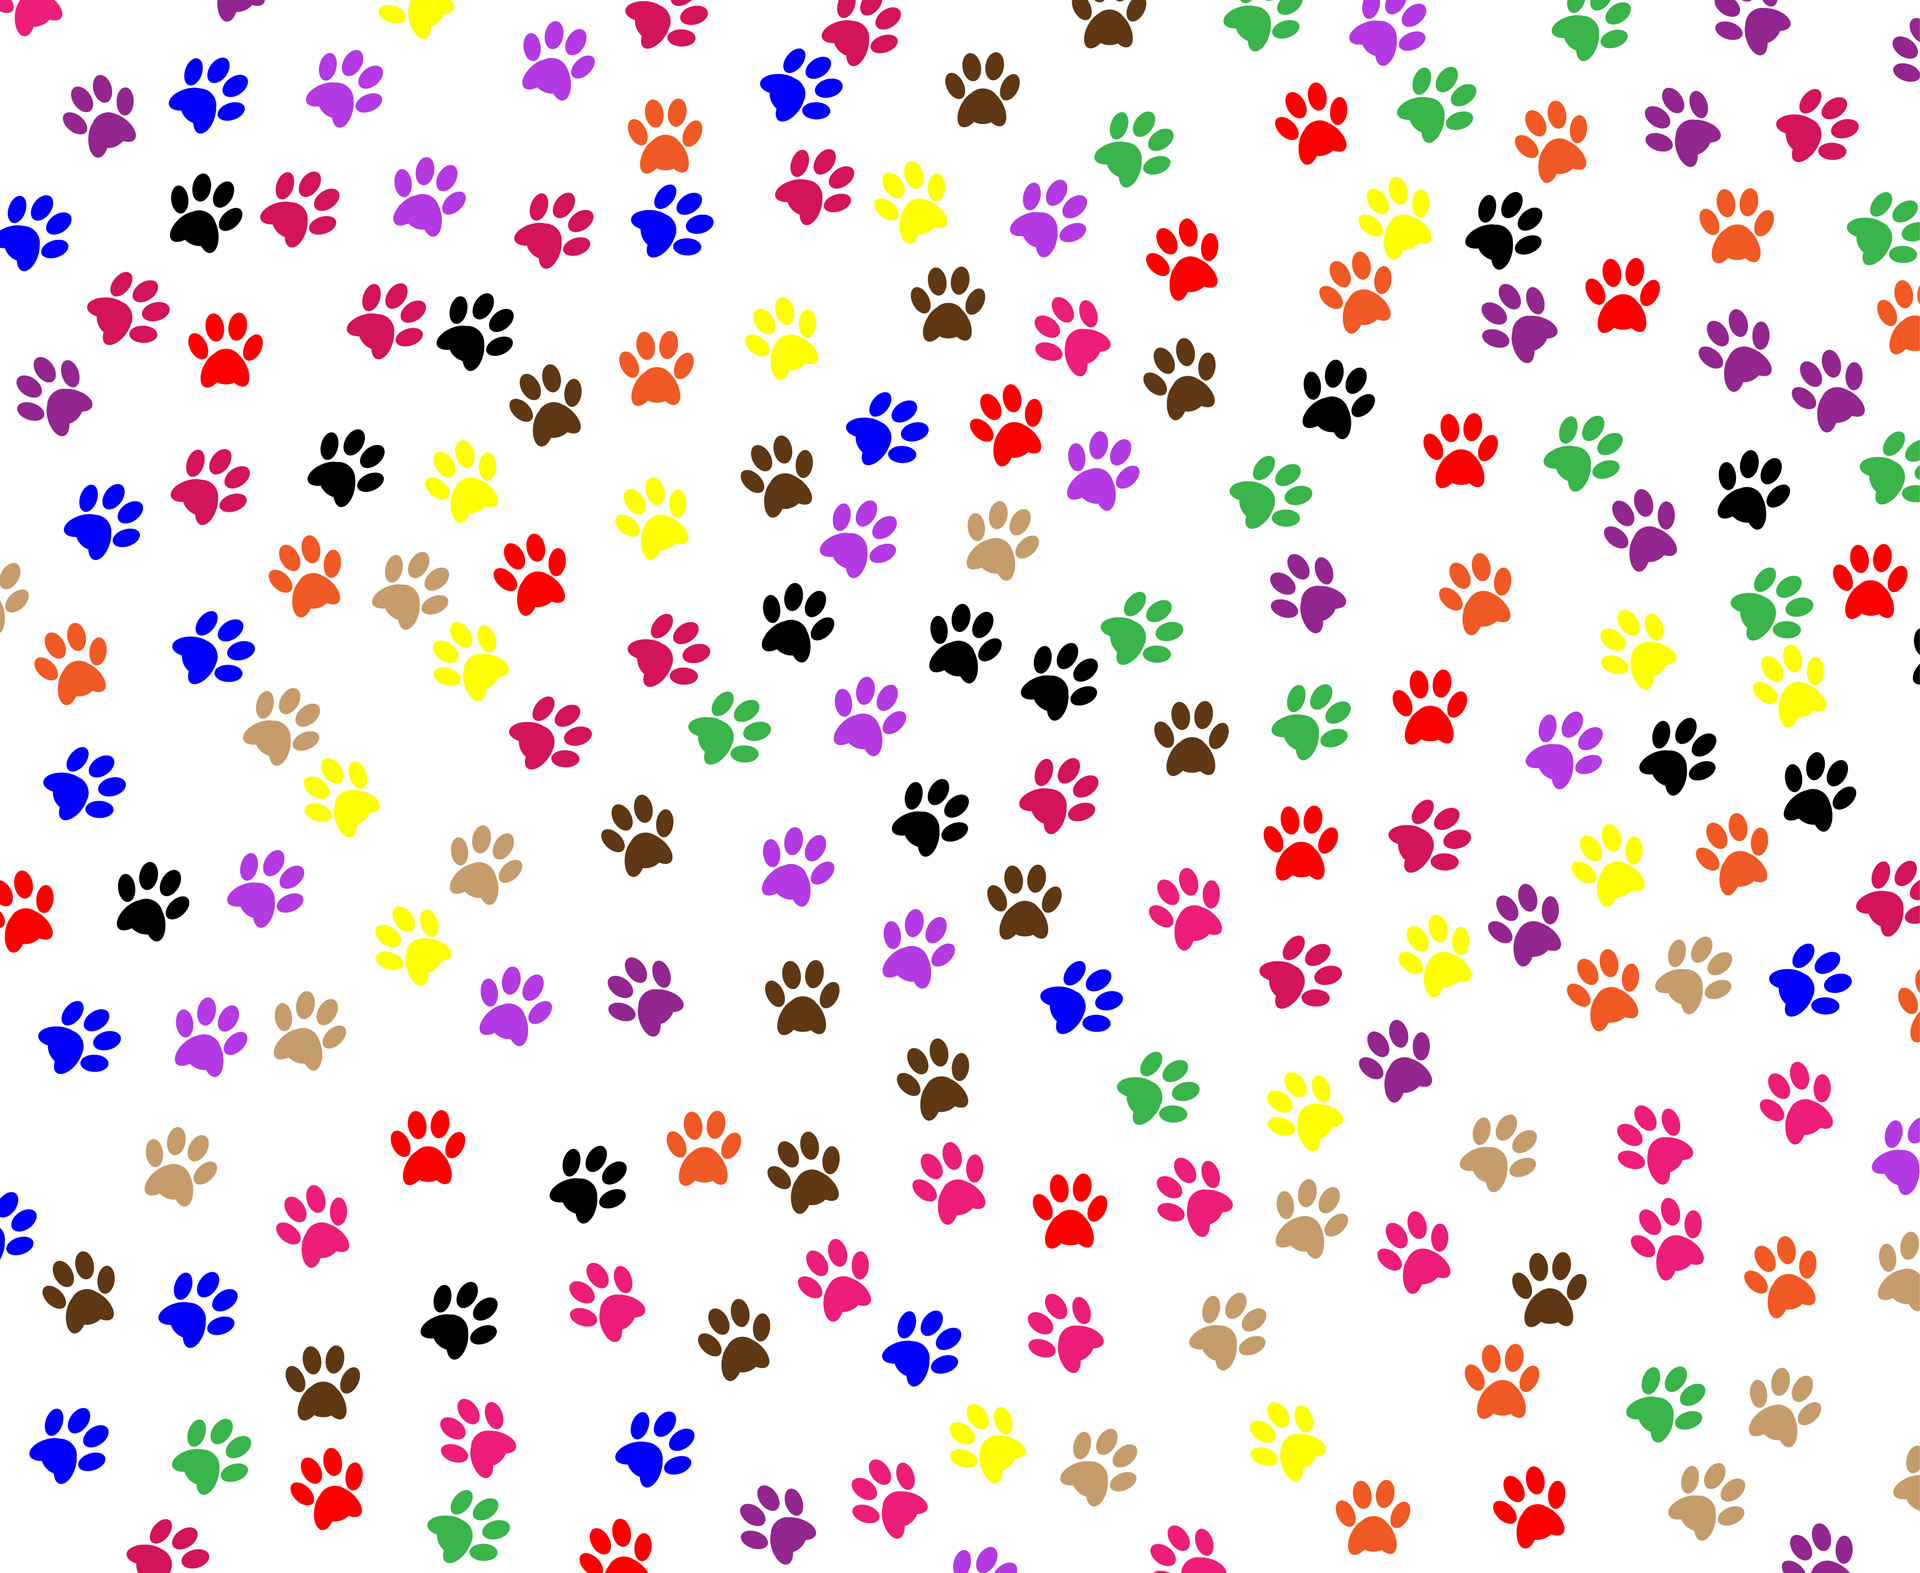 Dog Footprint Wallpaper